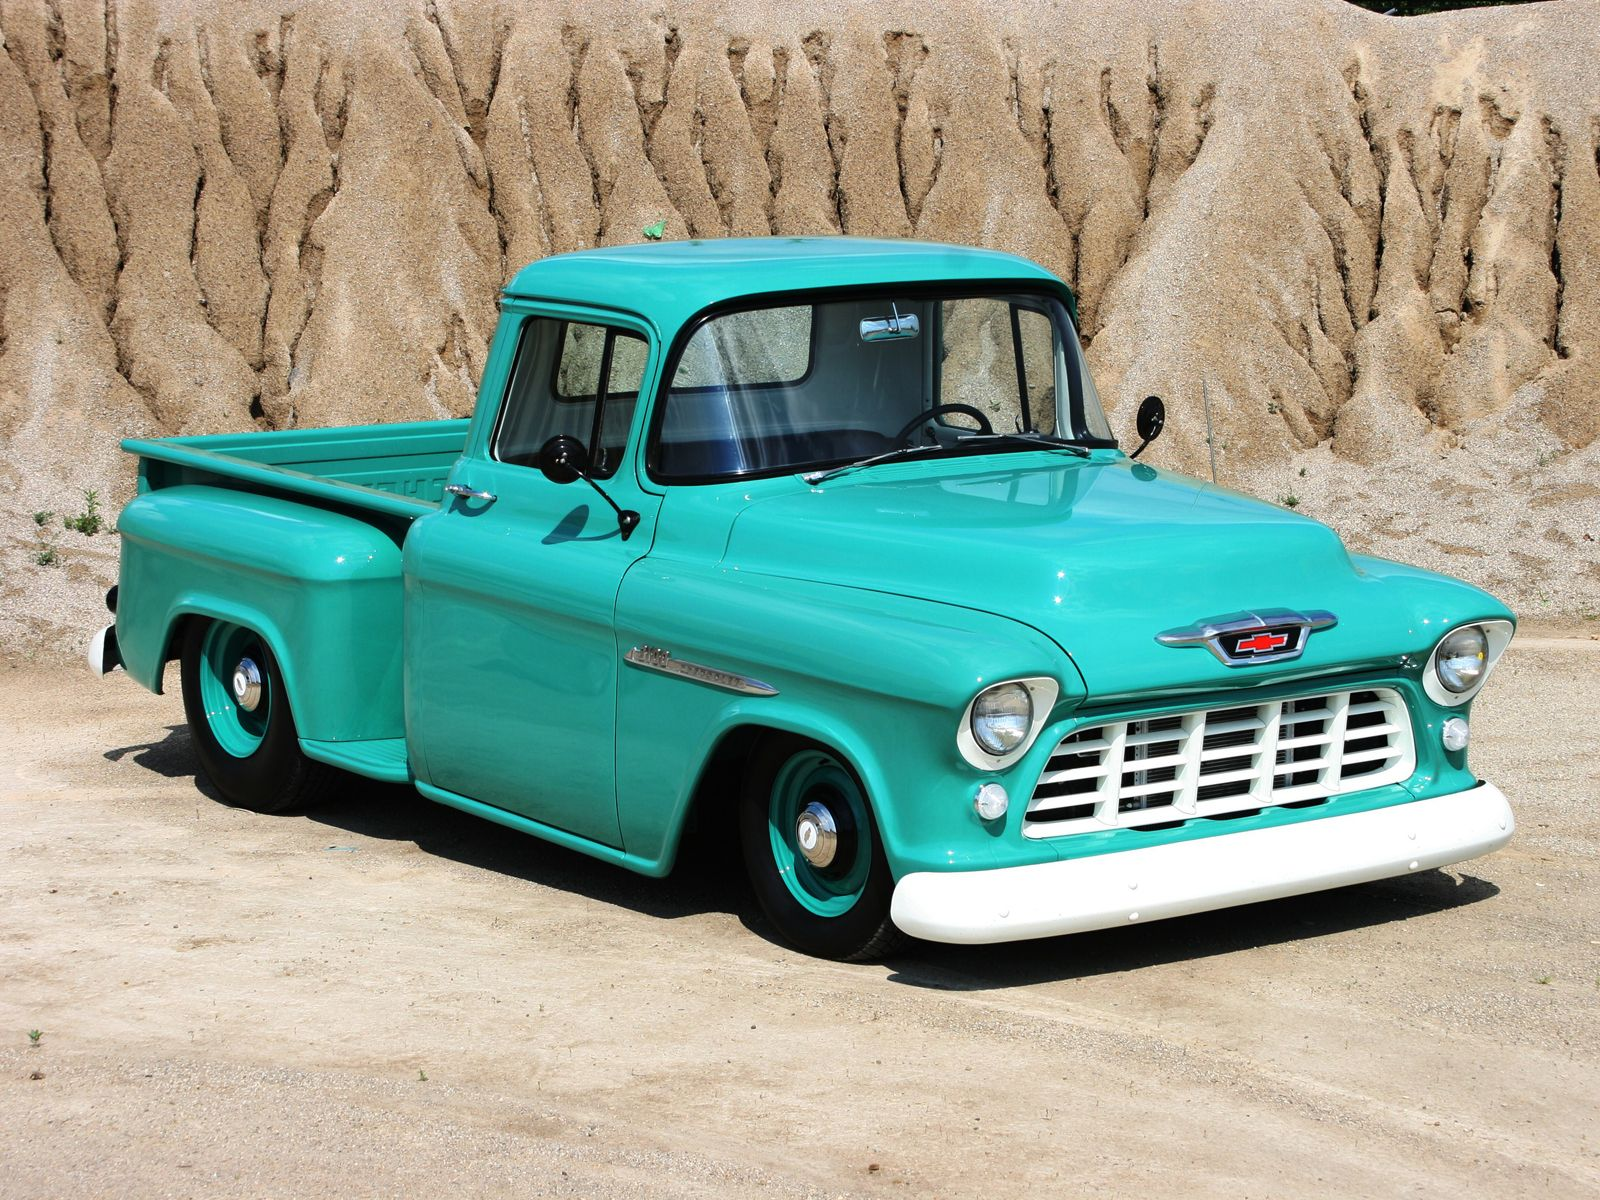 1955 - Chevy pick up - www.classictrucks.com